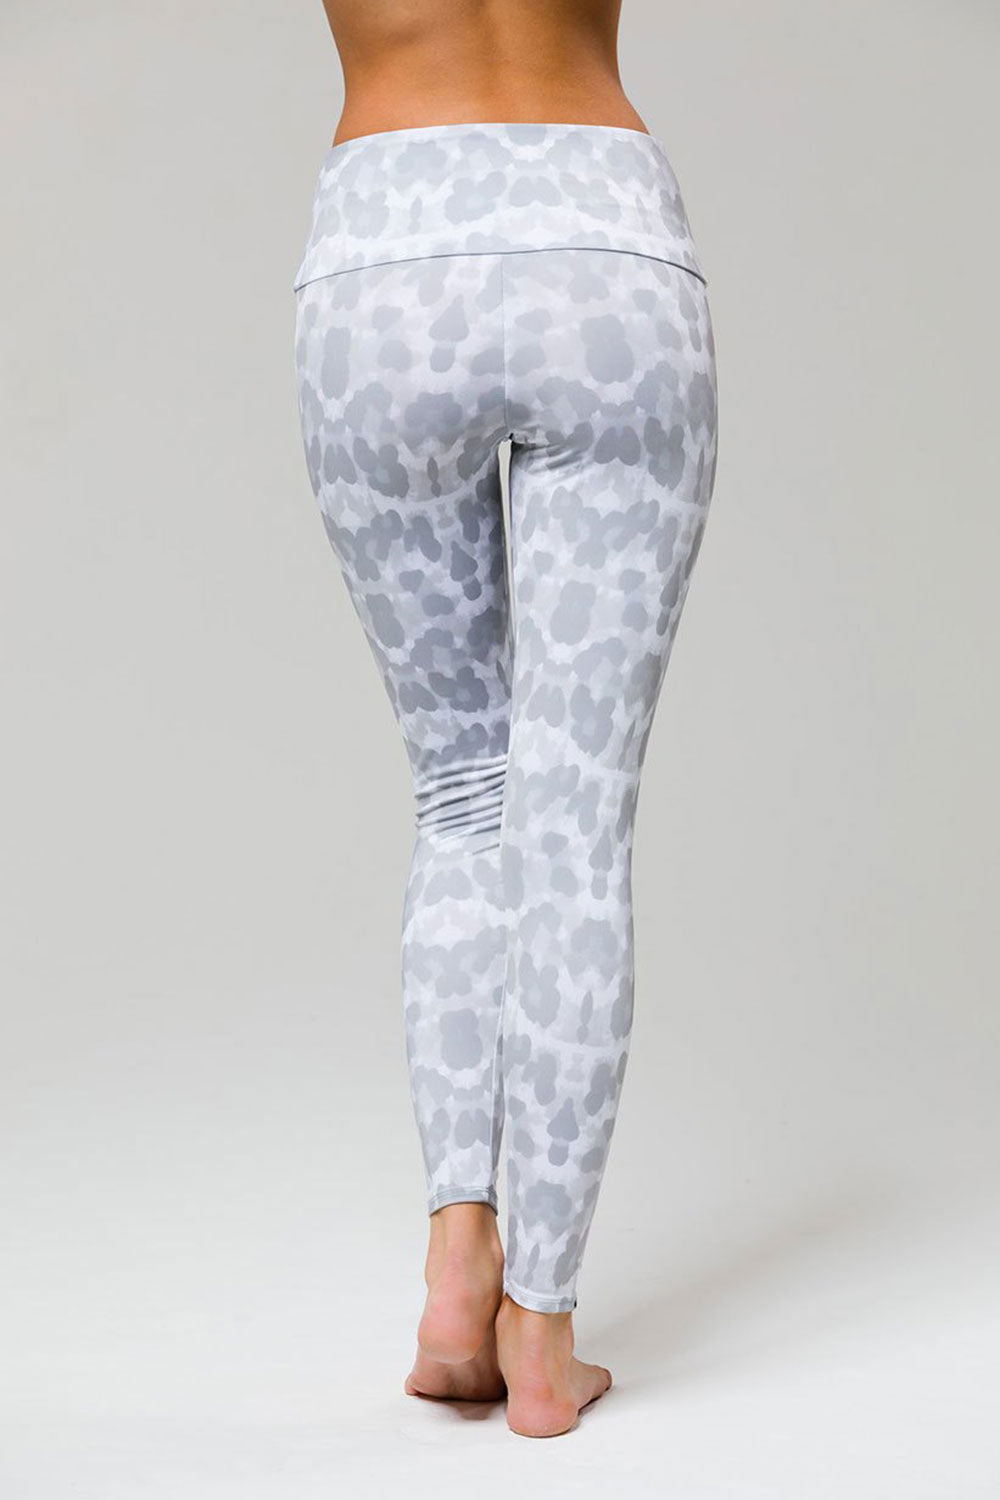 High Rise Legging - Nocturnal Leopard